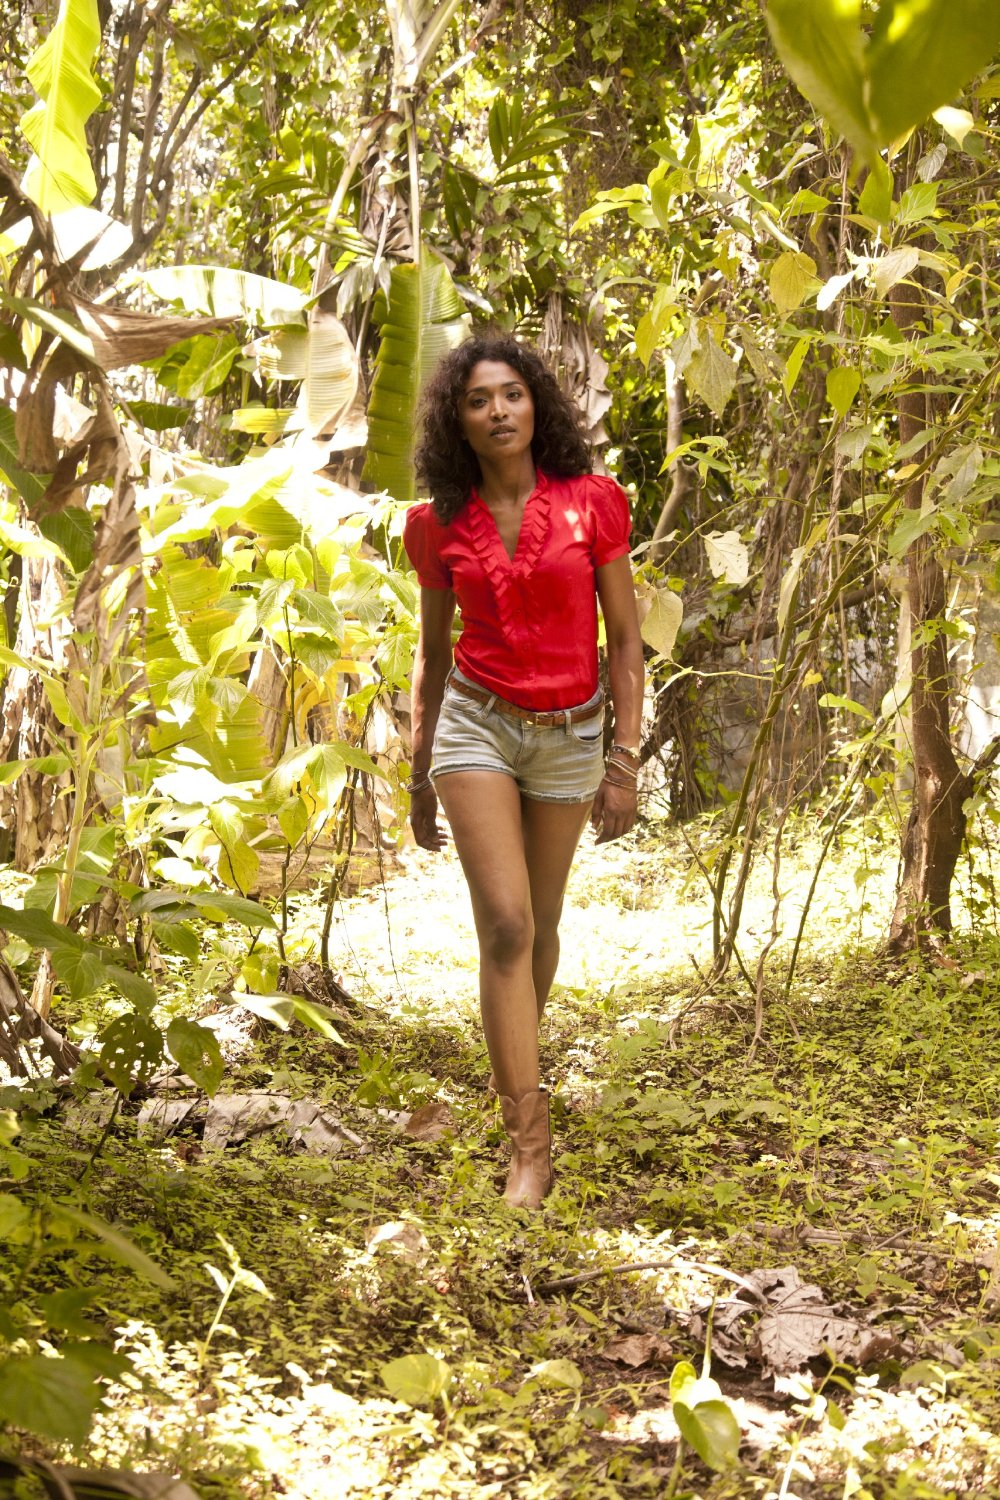 Death in Paradise: Why did Sara Martins leave Death in Paradise?